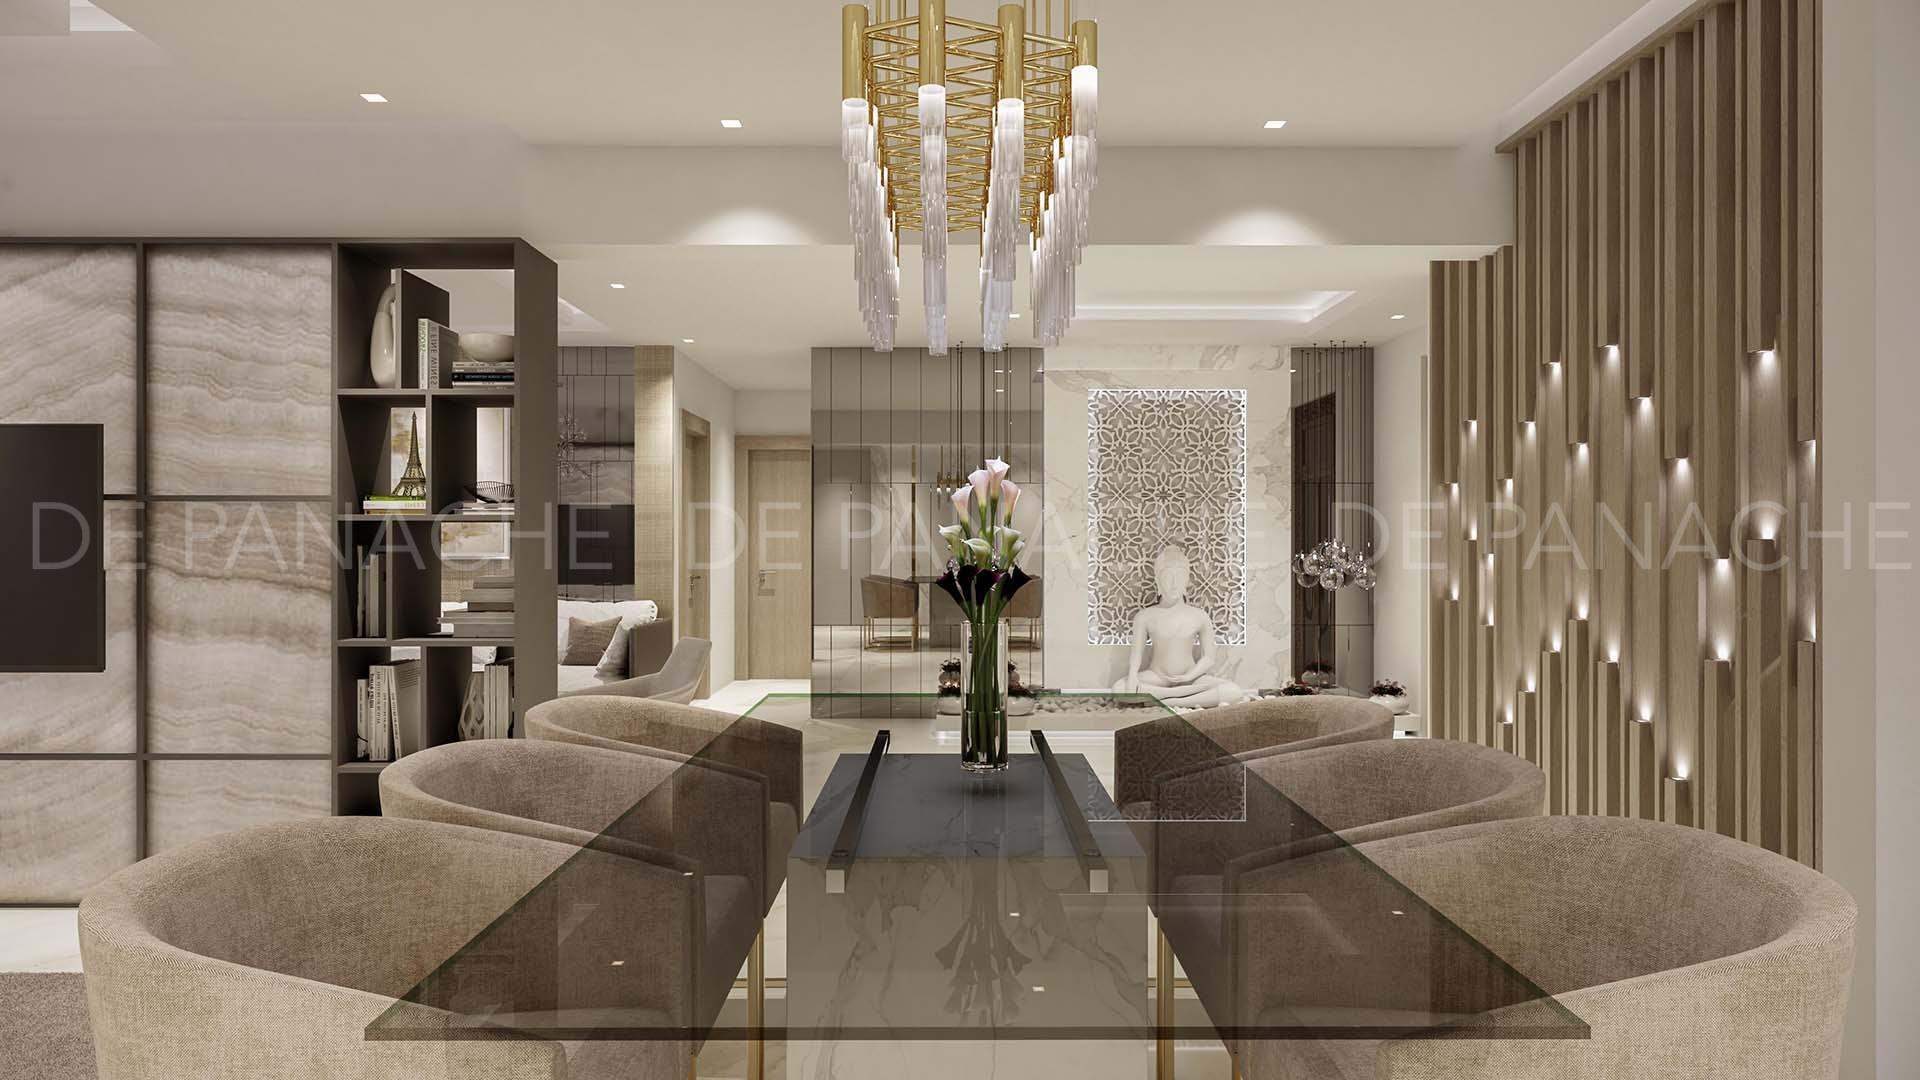 . De Panache  The Best Interior Designer Company in Bangalore   De